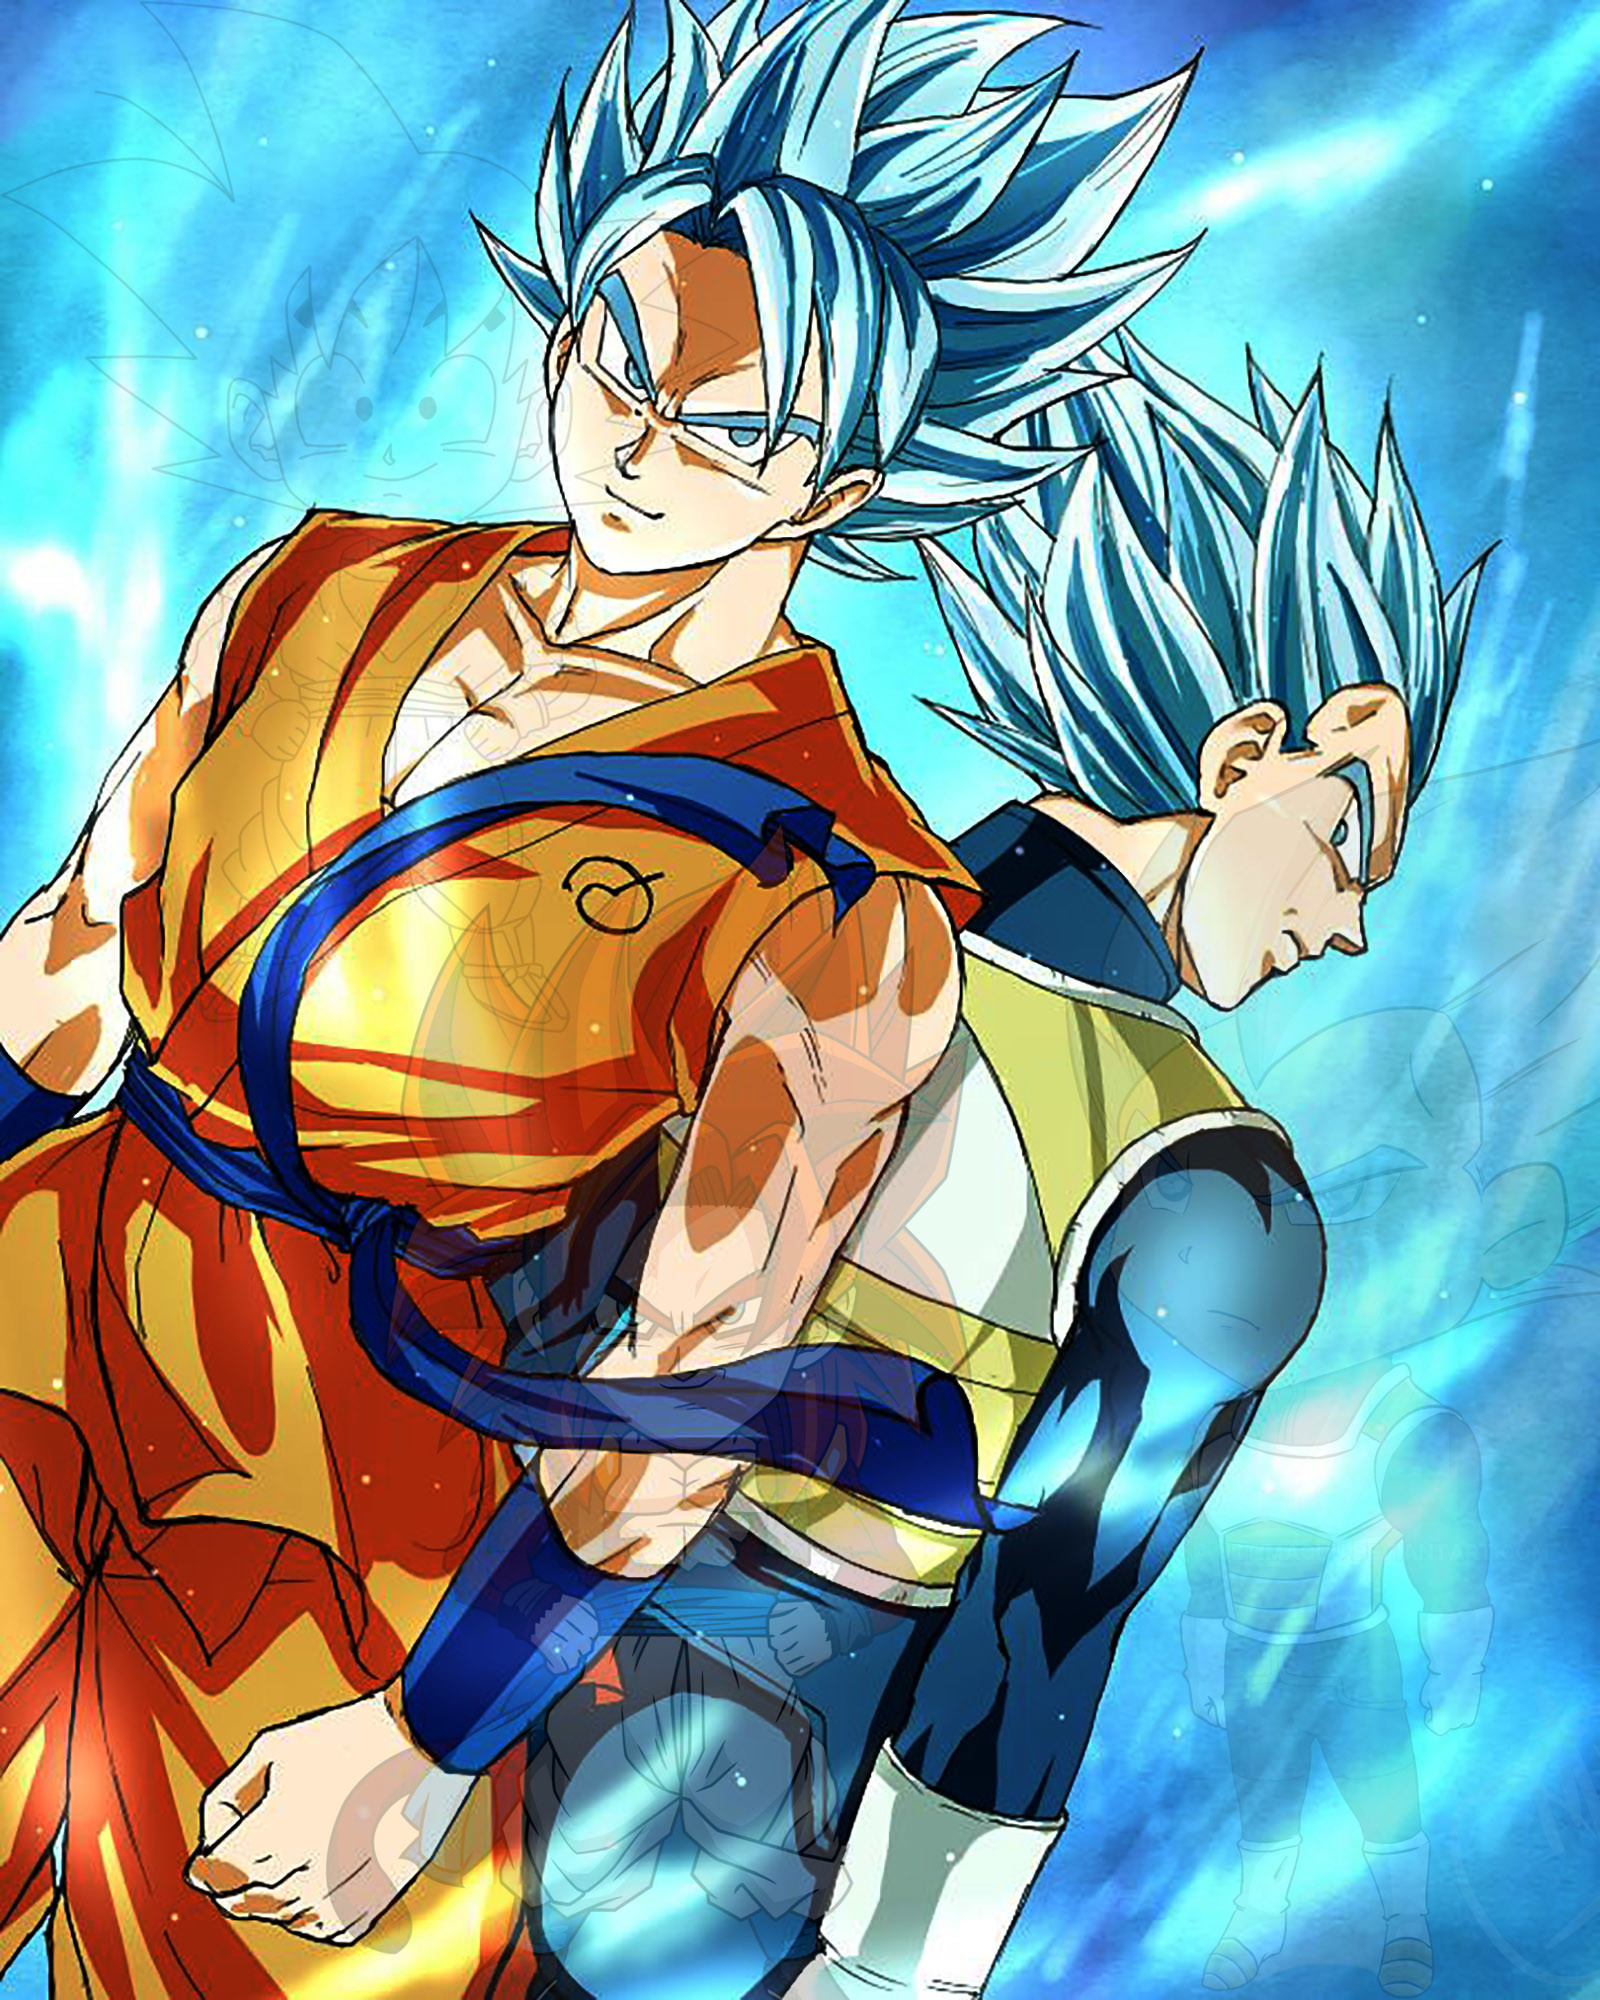 dragon ball z iphone wallpaper vegeta phone wallpaper 61 images 7906